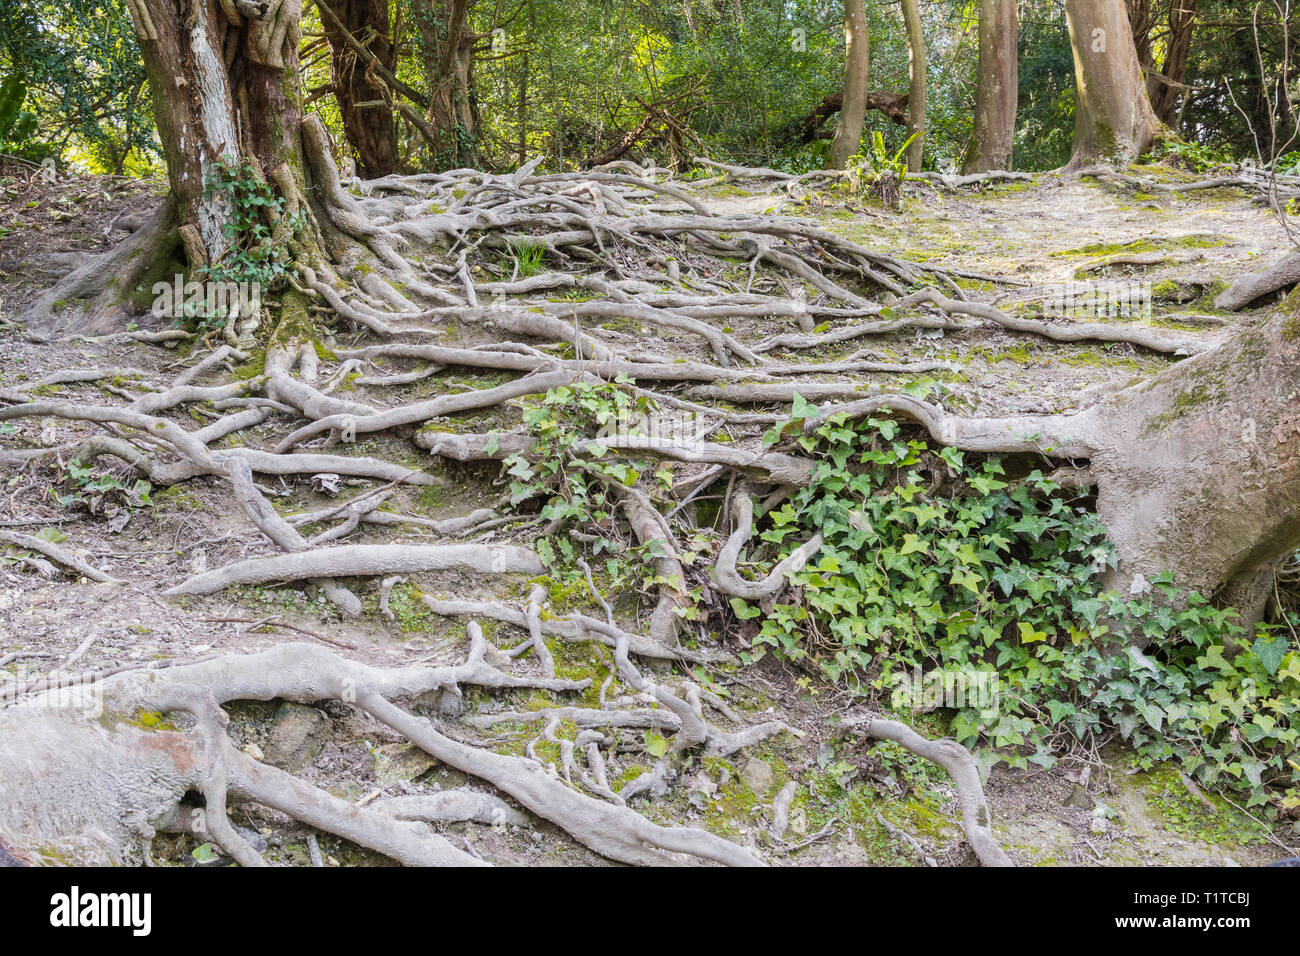 Exposed tree roots from a large tree protruding above ground. - Stock Image